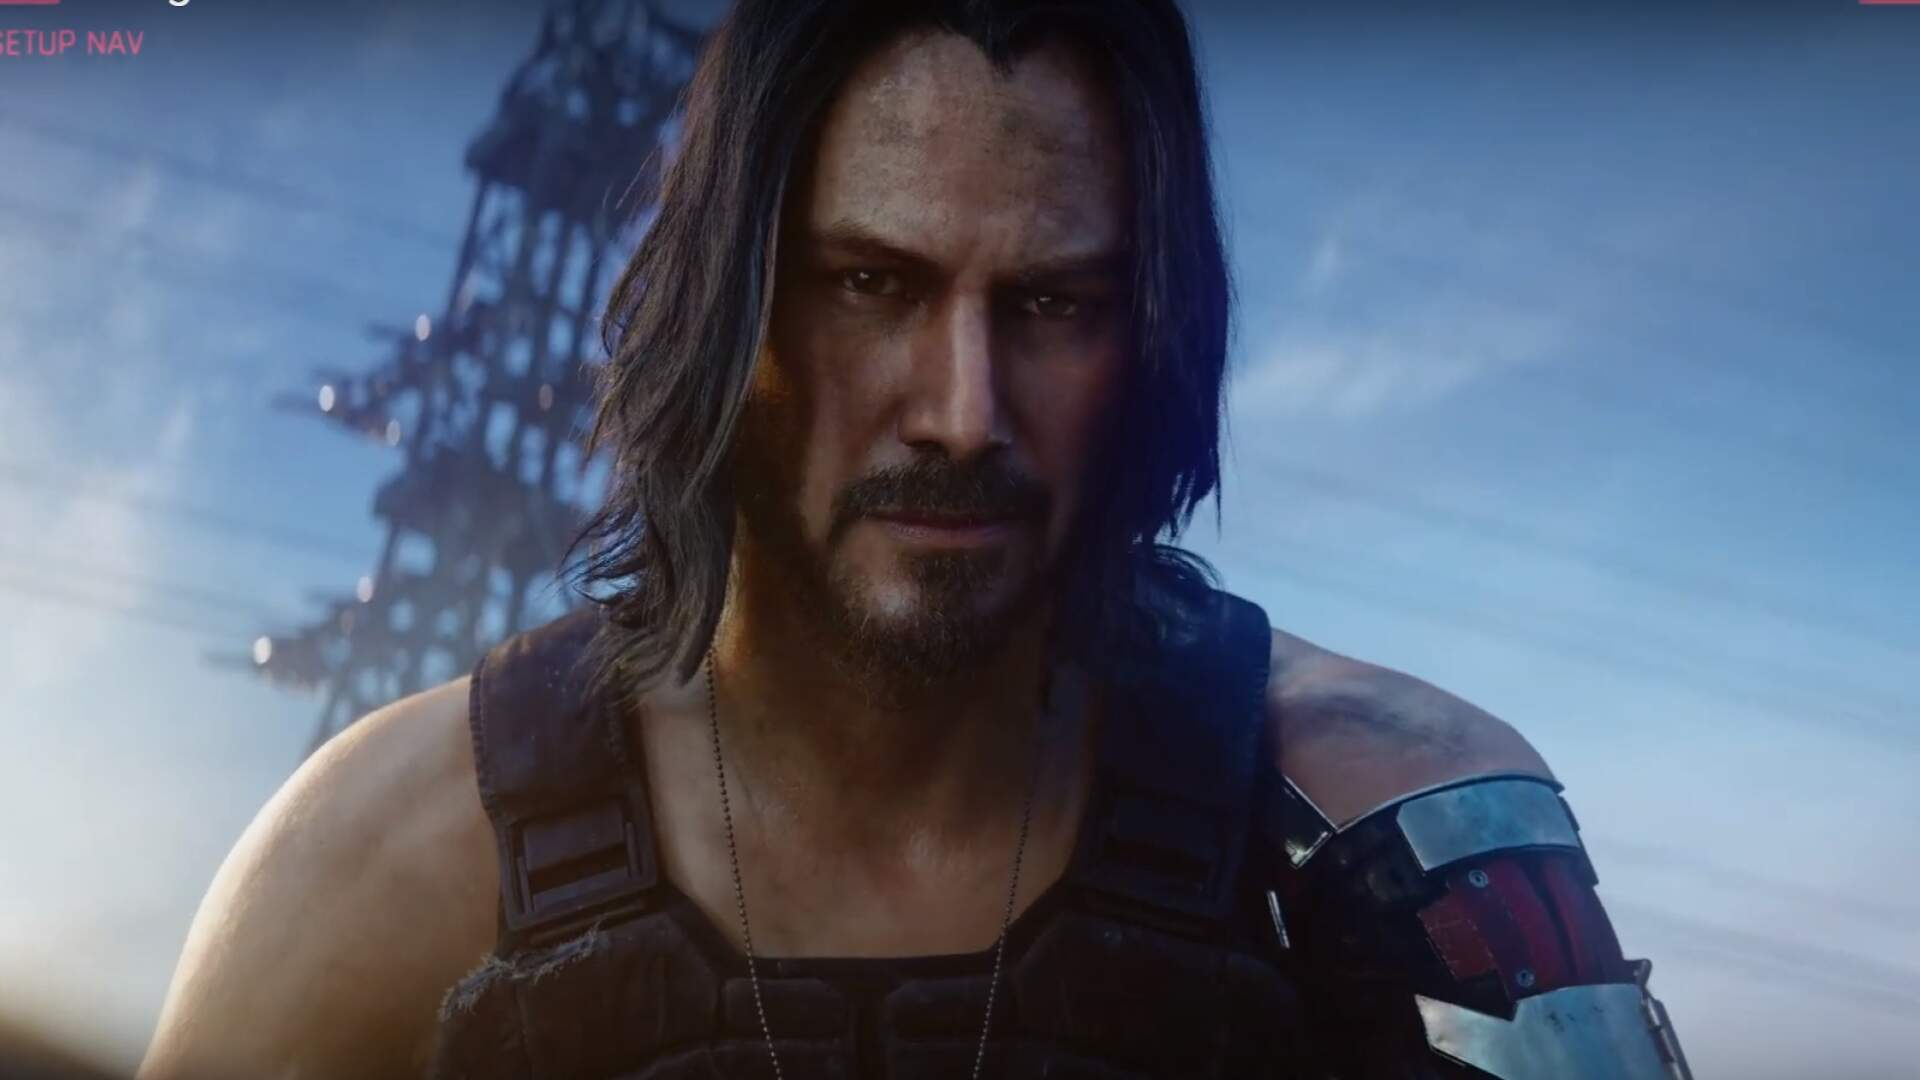 Cyberpunk 2077 Review Roundup: The Good, the Bad, and the Buggy